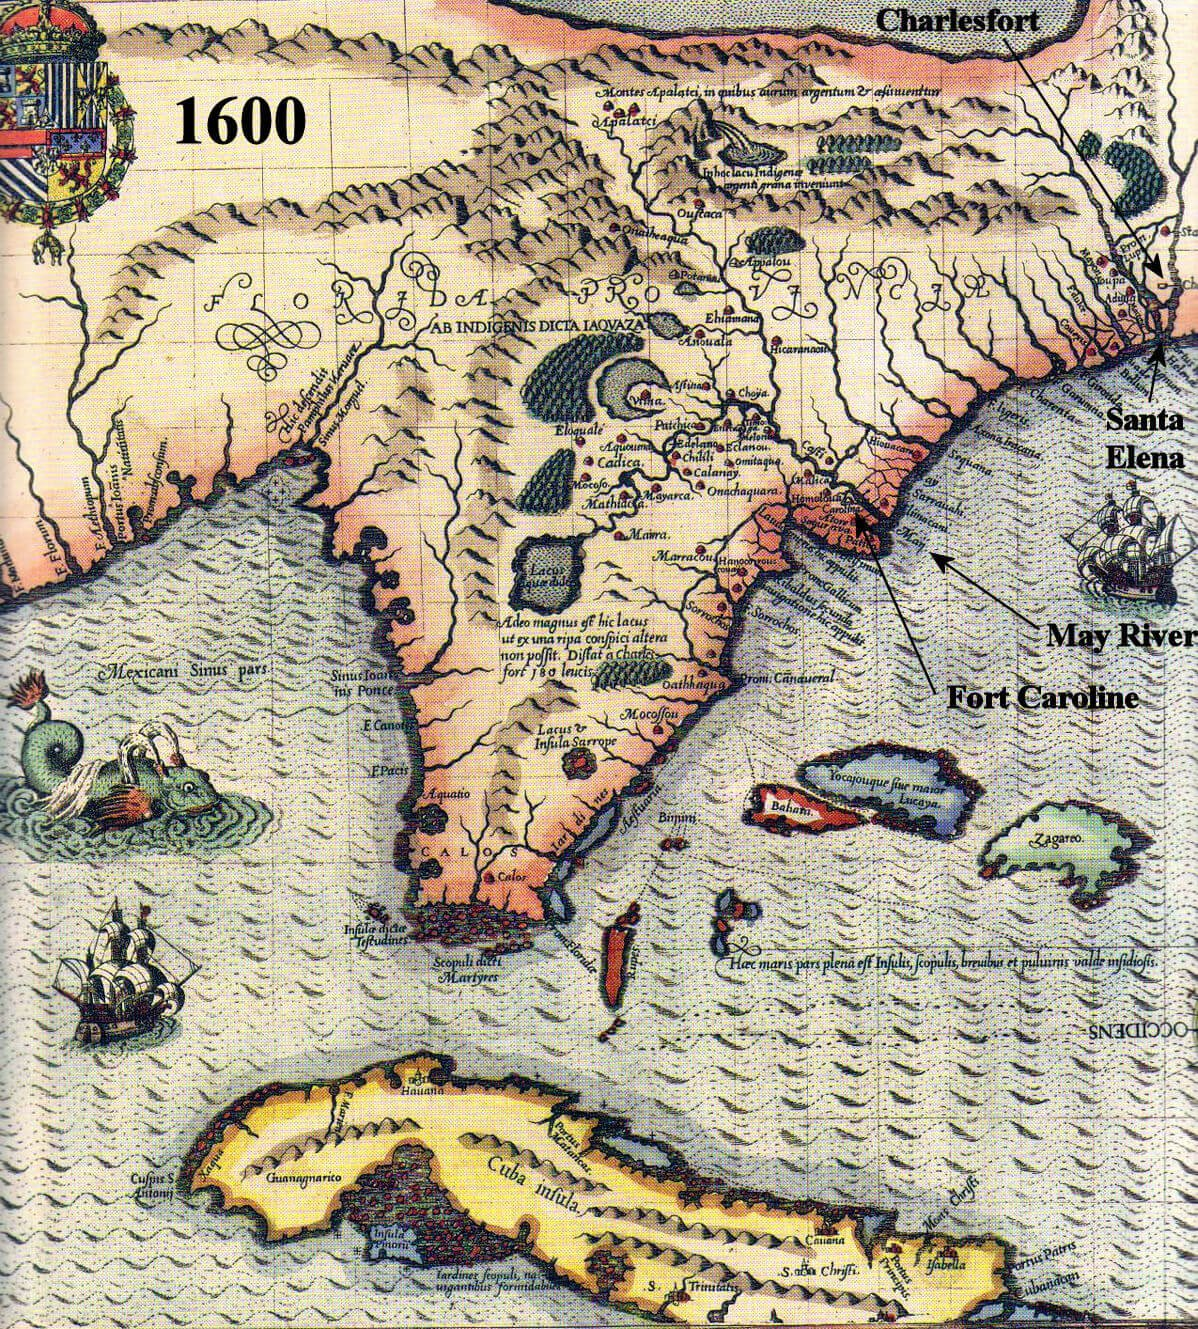 Historical Maps Of Southeast United States Access Genealogy - River maps of southeast us